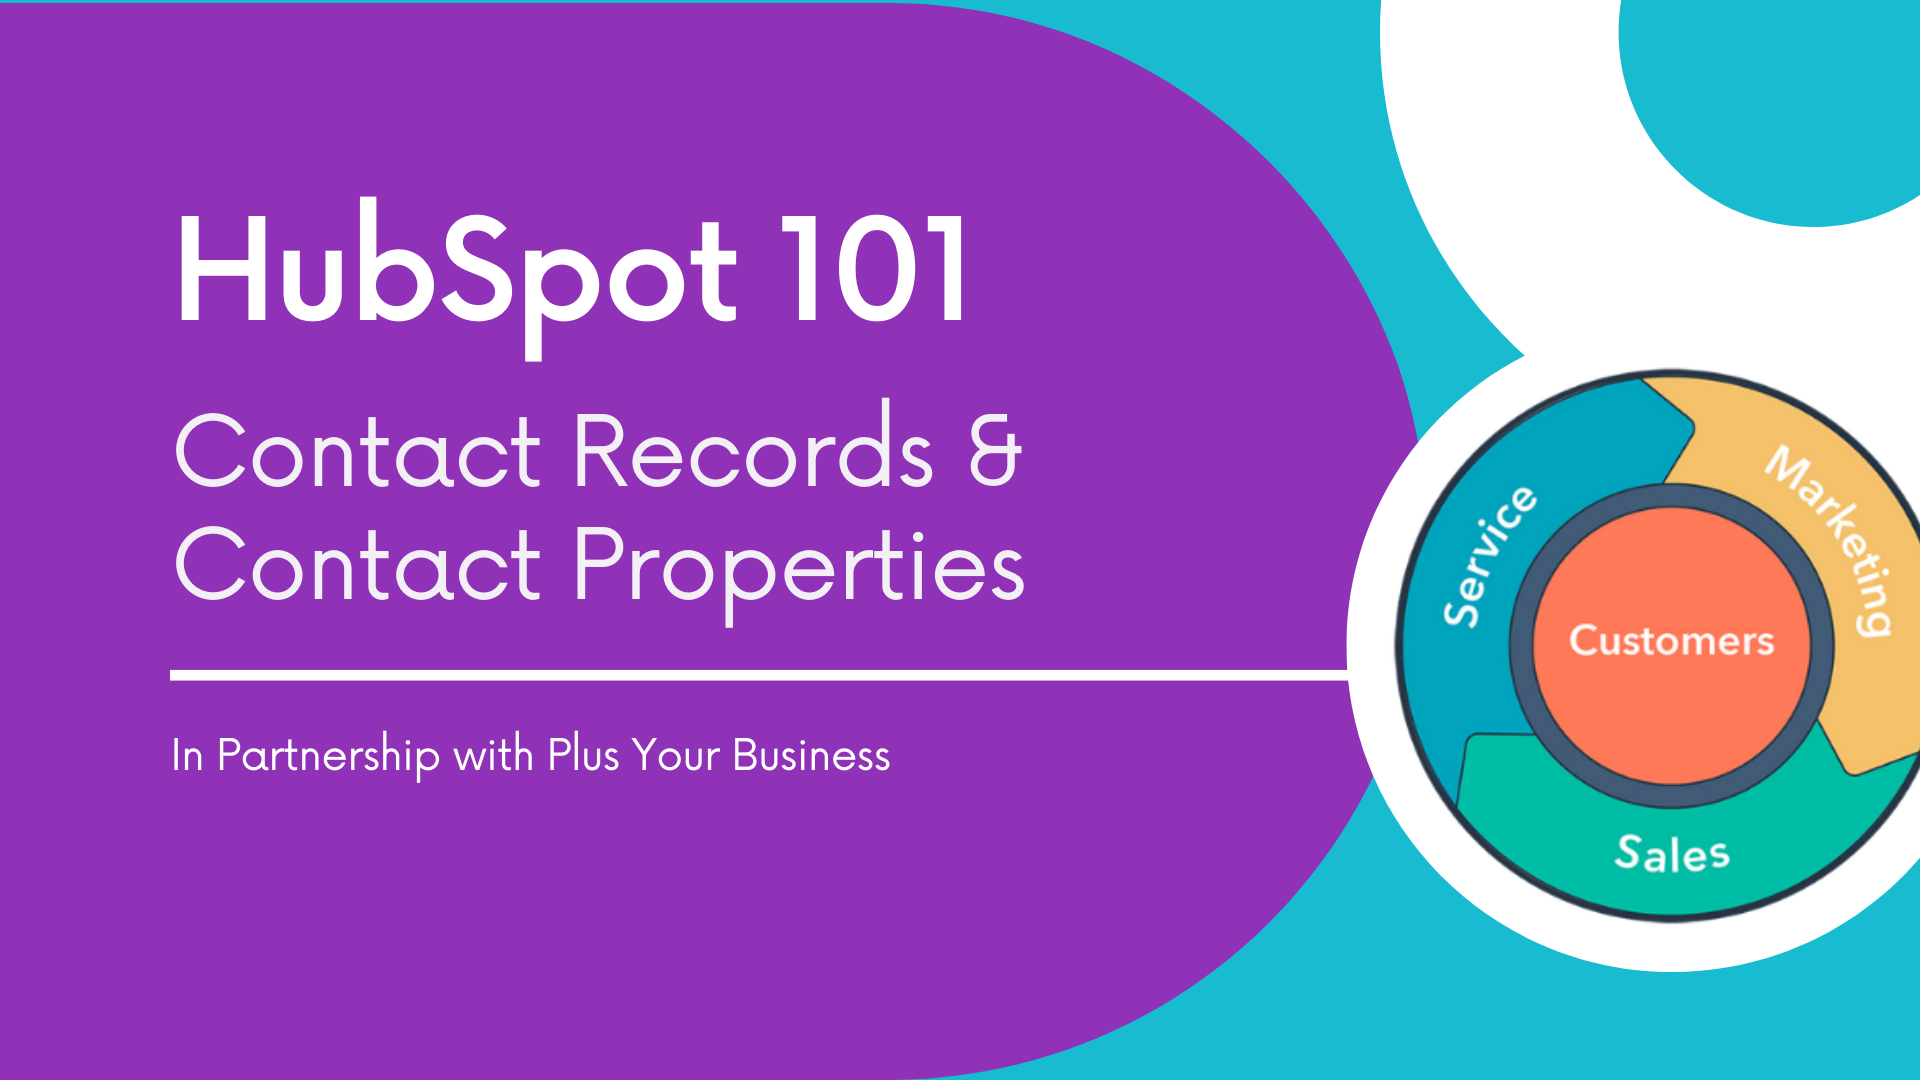 HubSpot Contact Records and Contact Properties